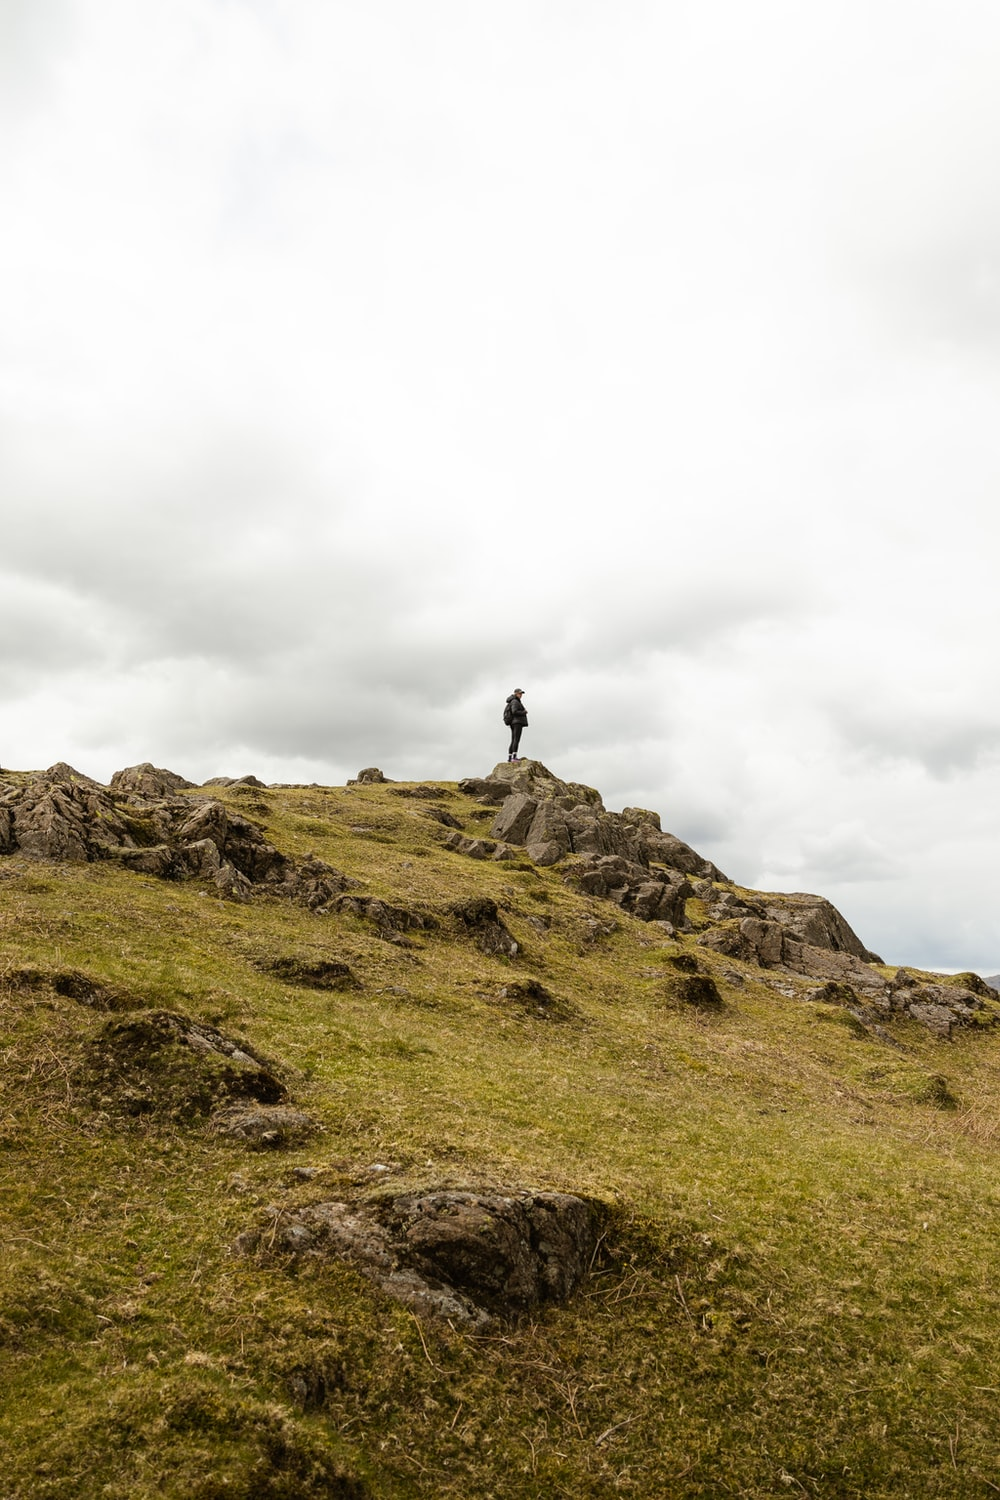 person standing on rock formation under white sky during daytime